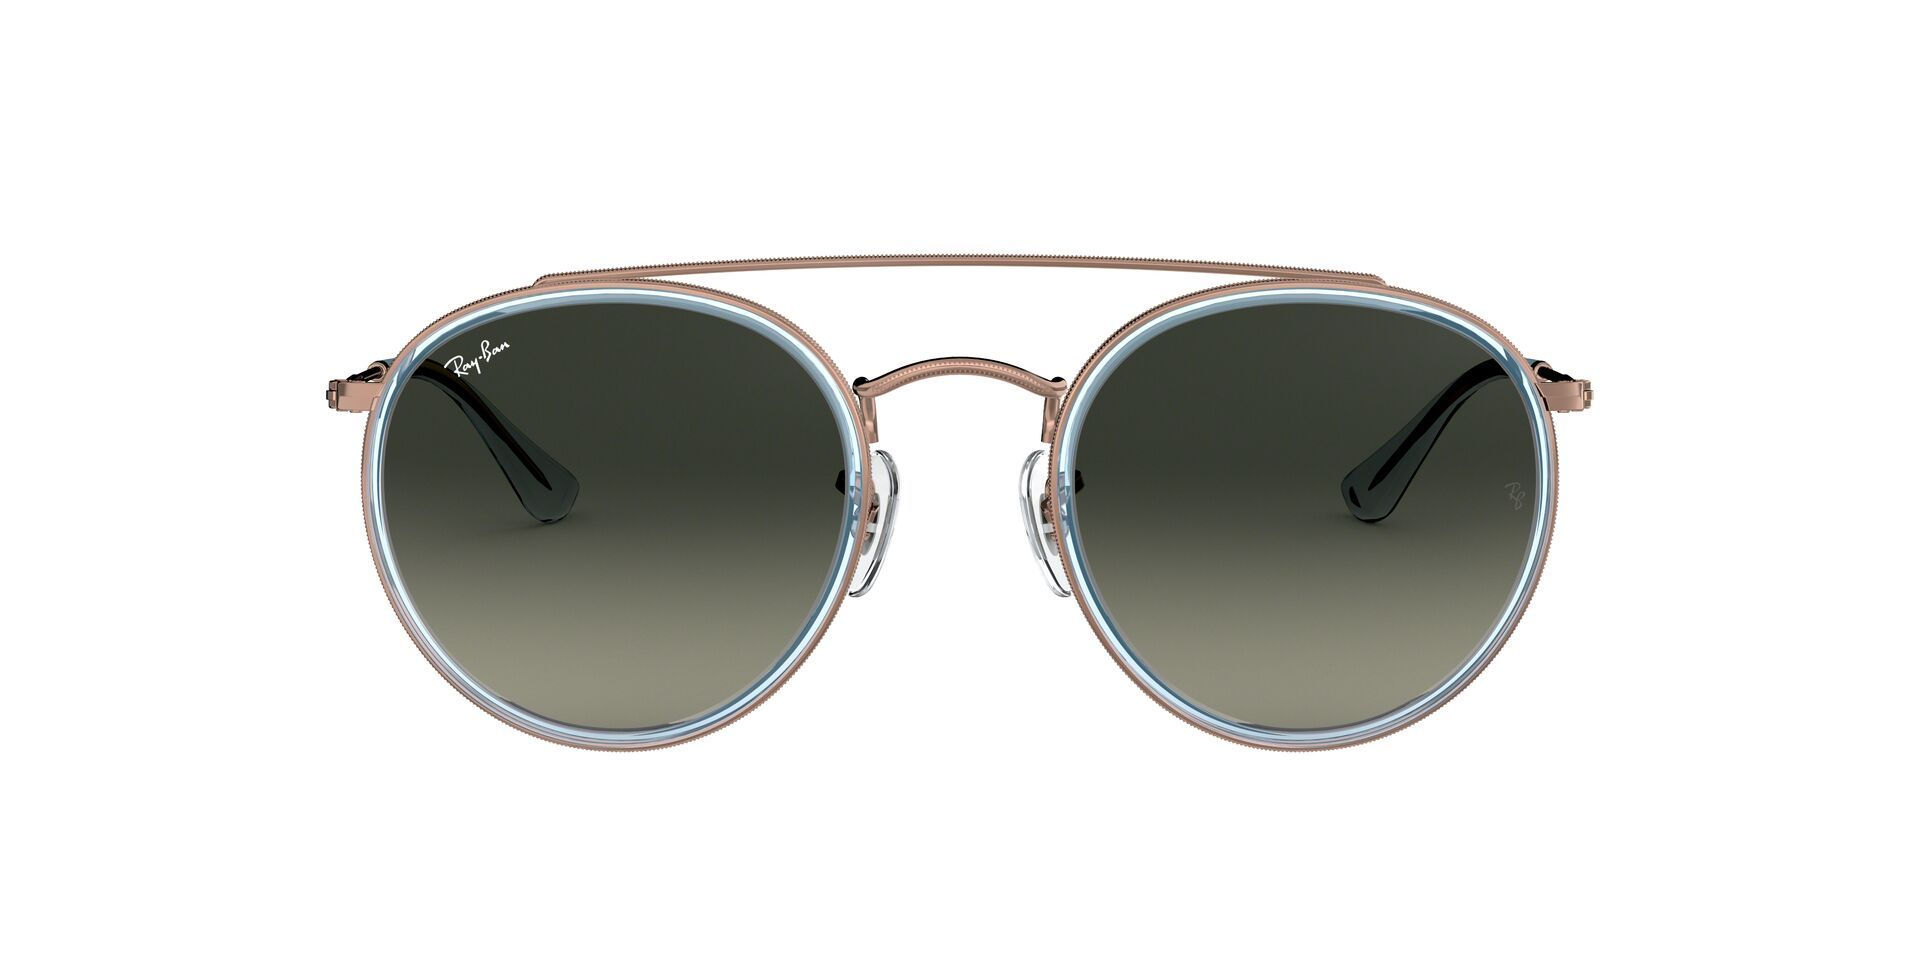 Ray Ban - RB3647N Bronze Oval Unisex Sunglasses - 51mm-Sunglasses-Designer Eyes